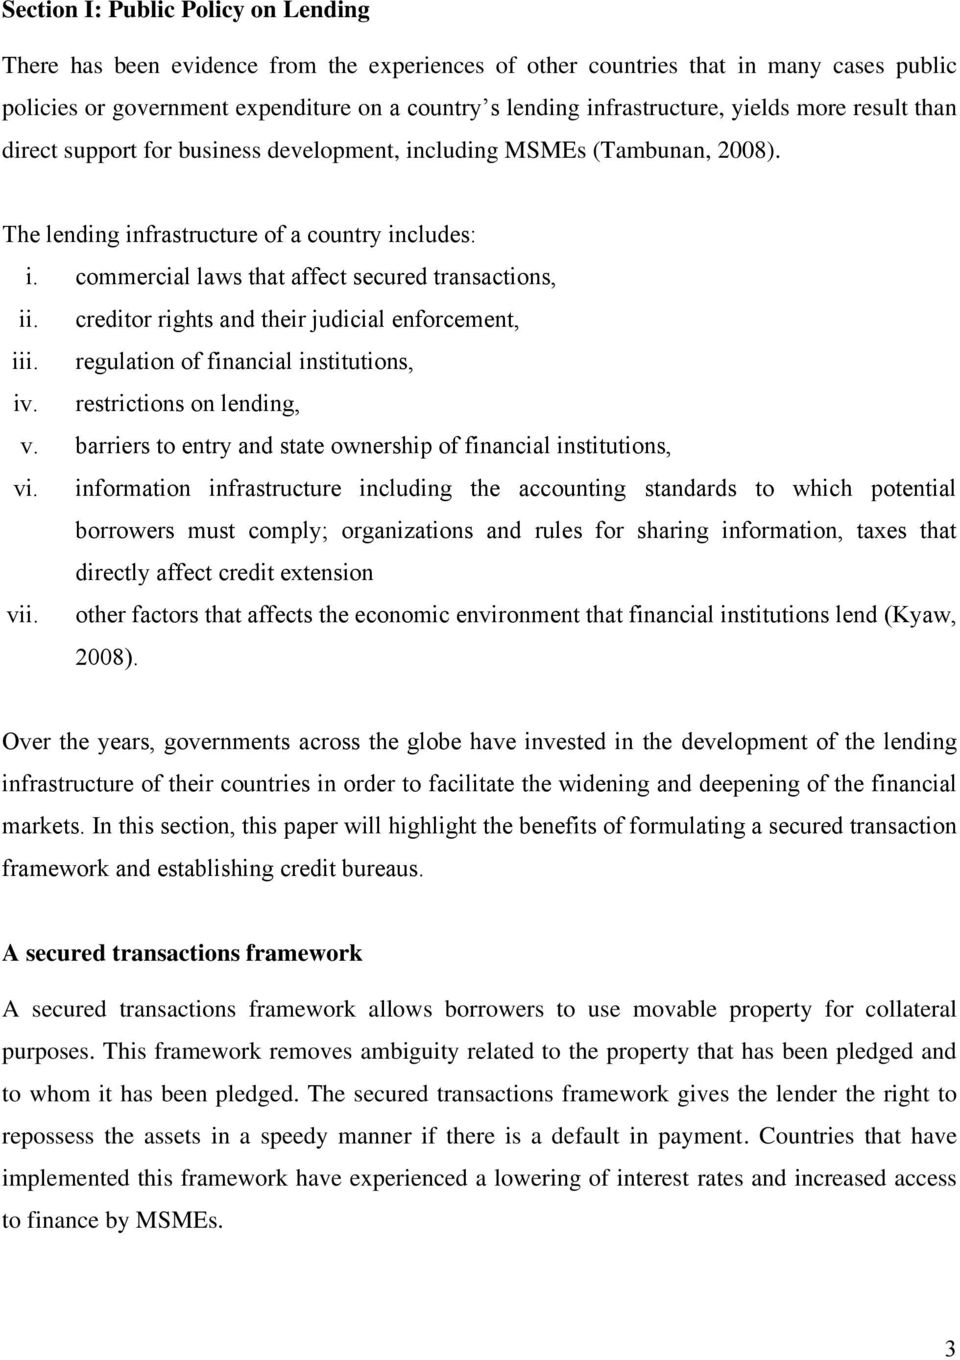 commercial laws that affect secured transactions, ii. creditor rights and their judicial enforcement, iii. regulation of financial institutions, iv. restrictions on lending, v.